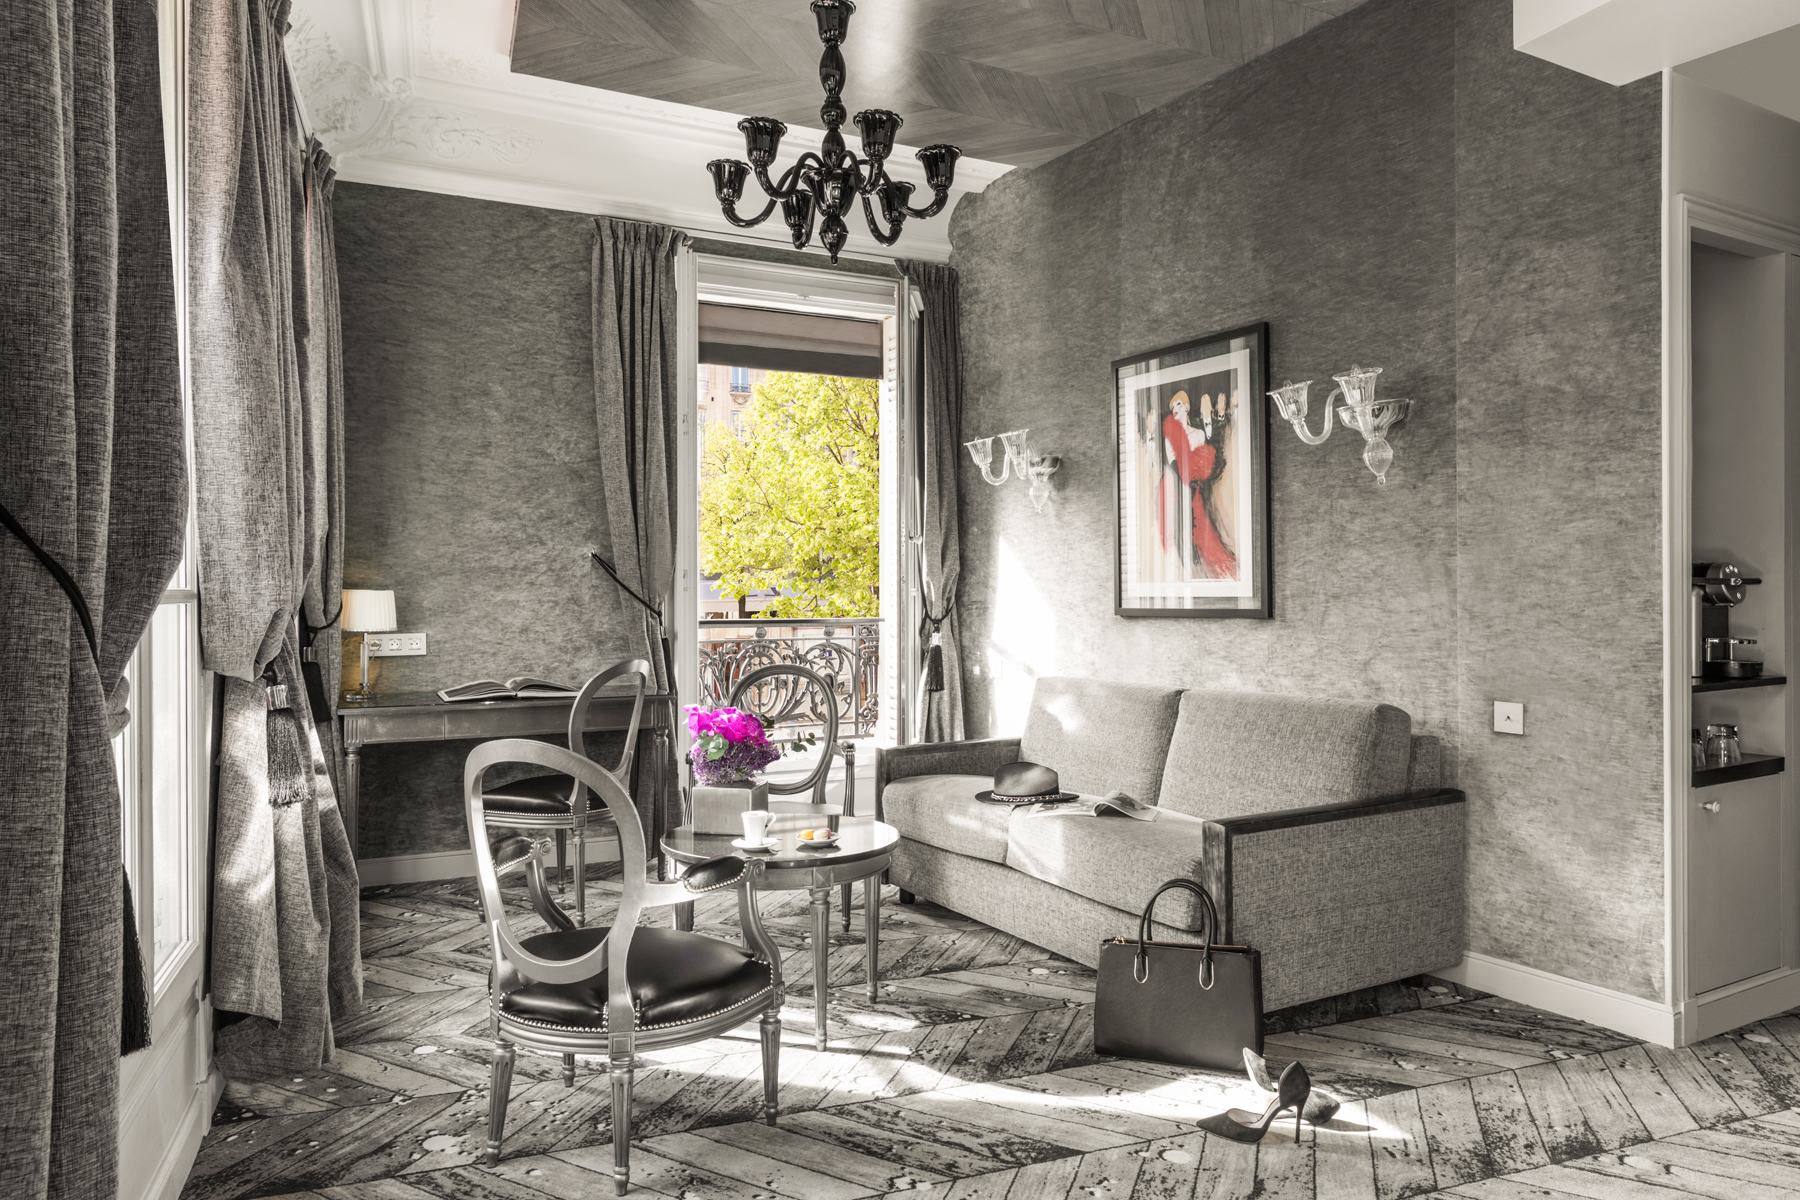 Maison Albar Hotels Le Champs-Elysées Junior Suite with a view on the arc de Triomphe